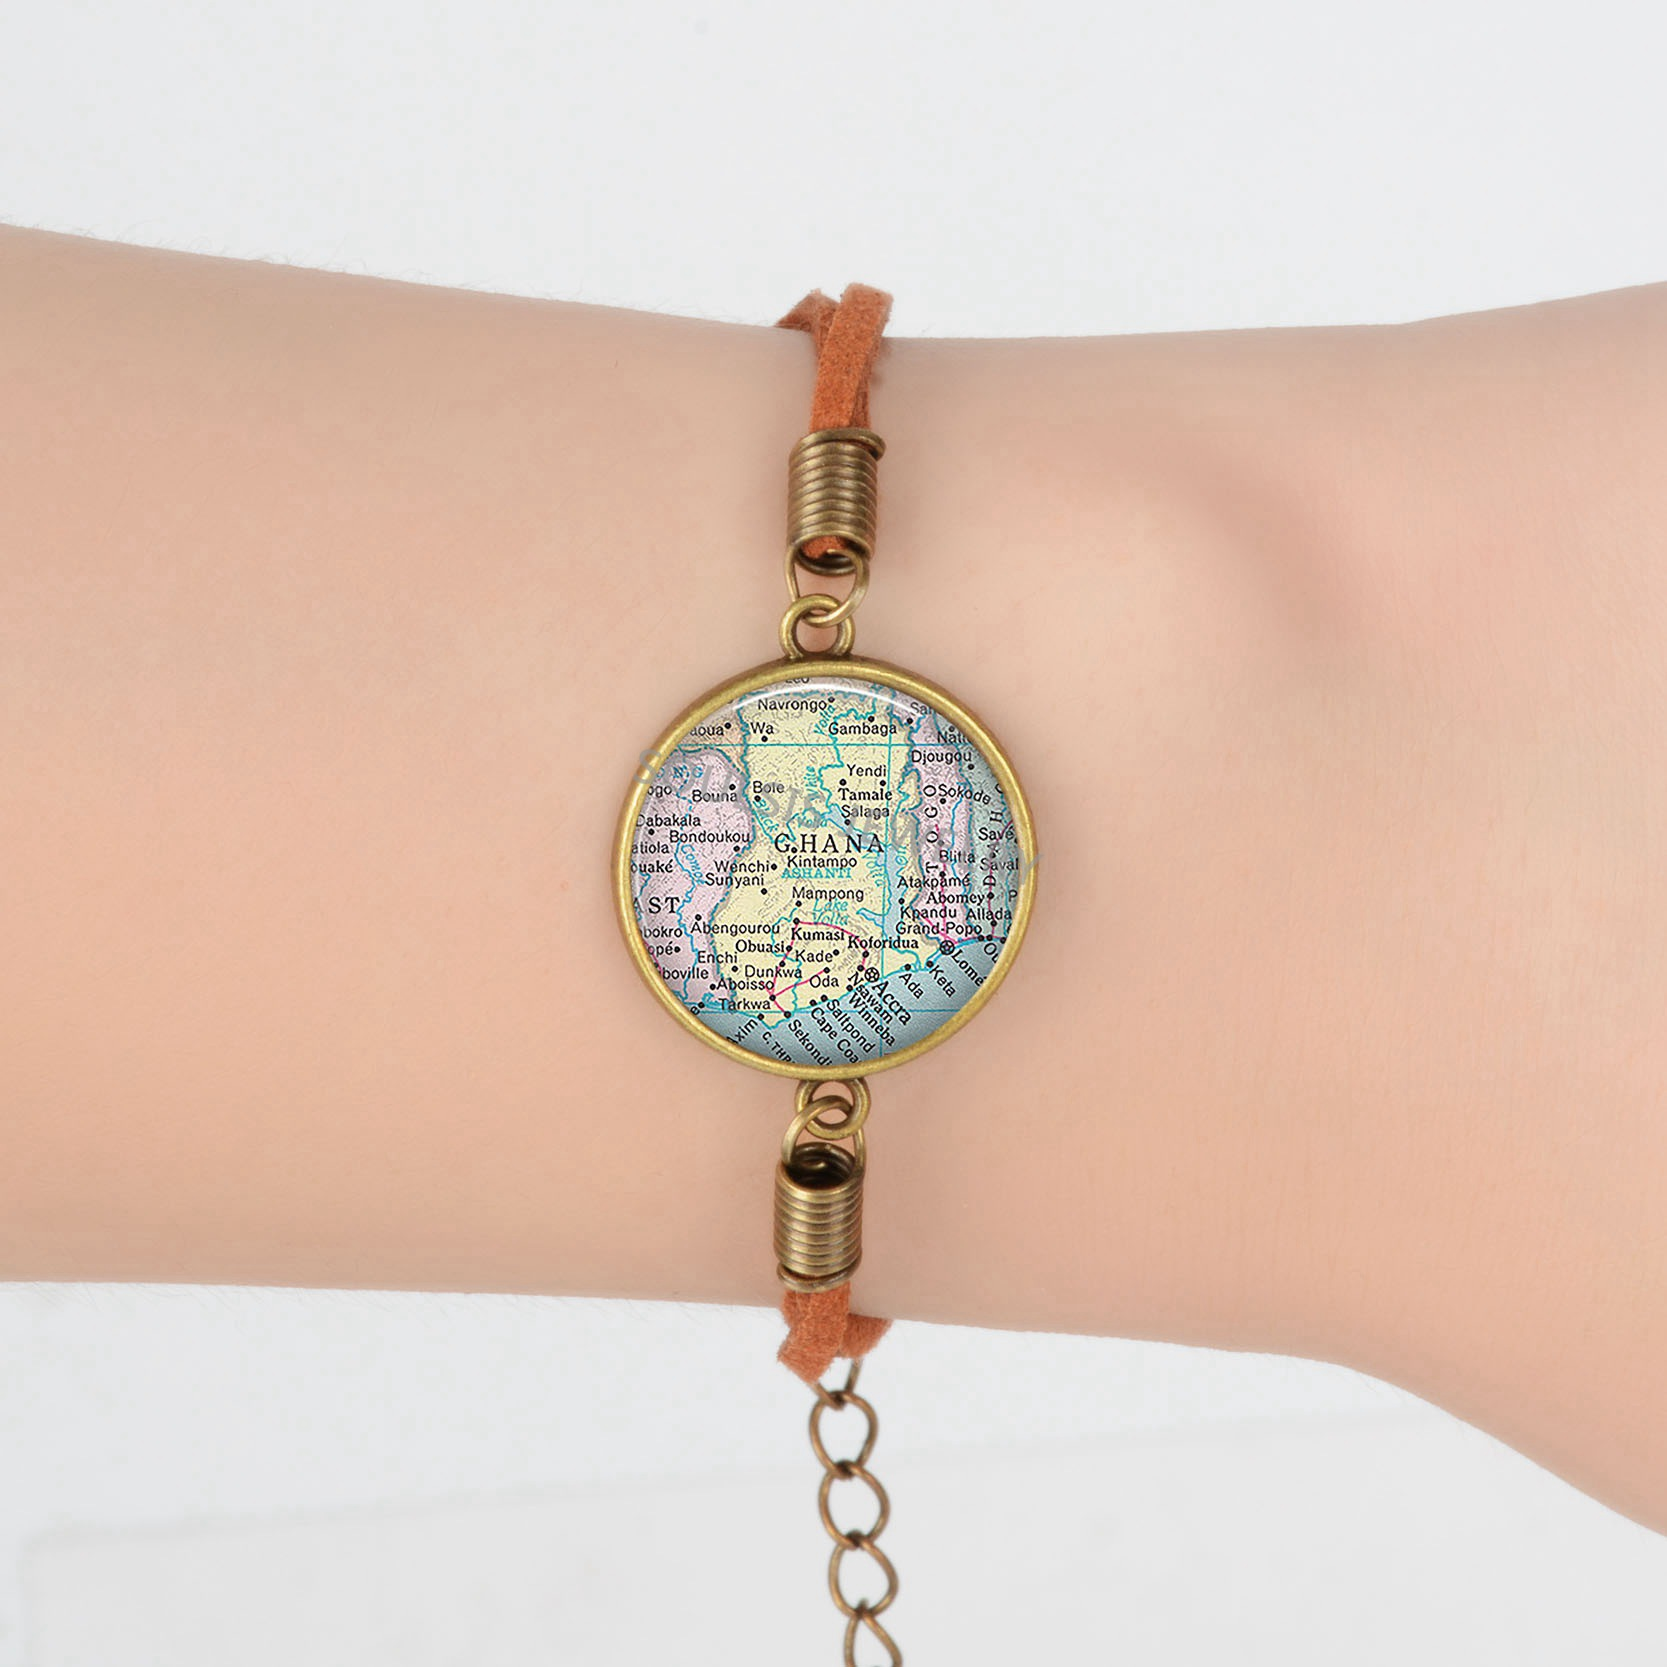 US $1 5 |Israel Georgia Wyoming Tennessee map Suede Leather Bracelet Earth  Vintage World Map Savannah Ghana Bracelets Art Glass Dome -in Charm